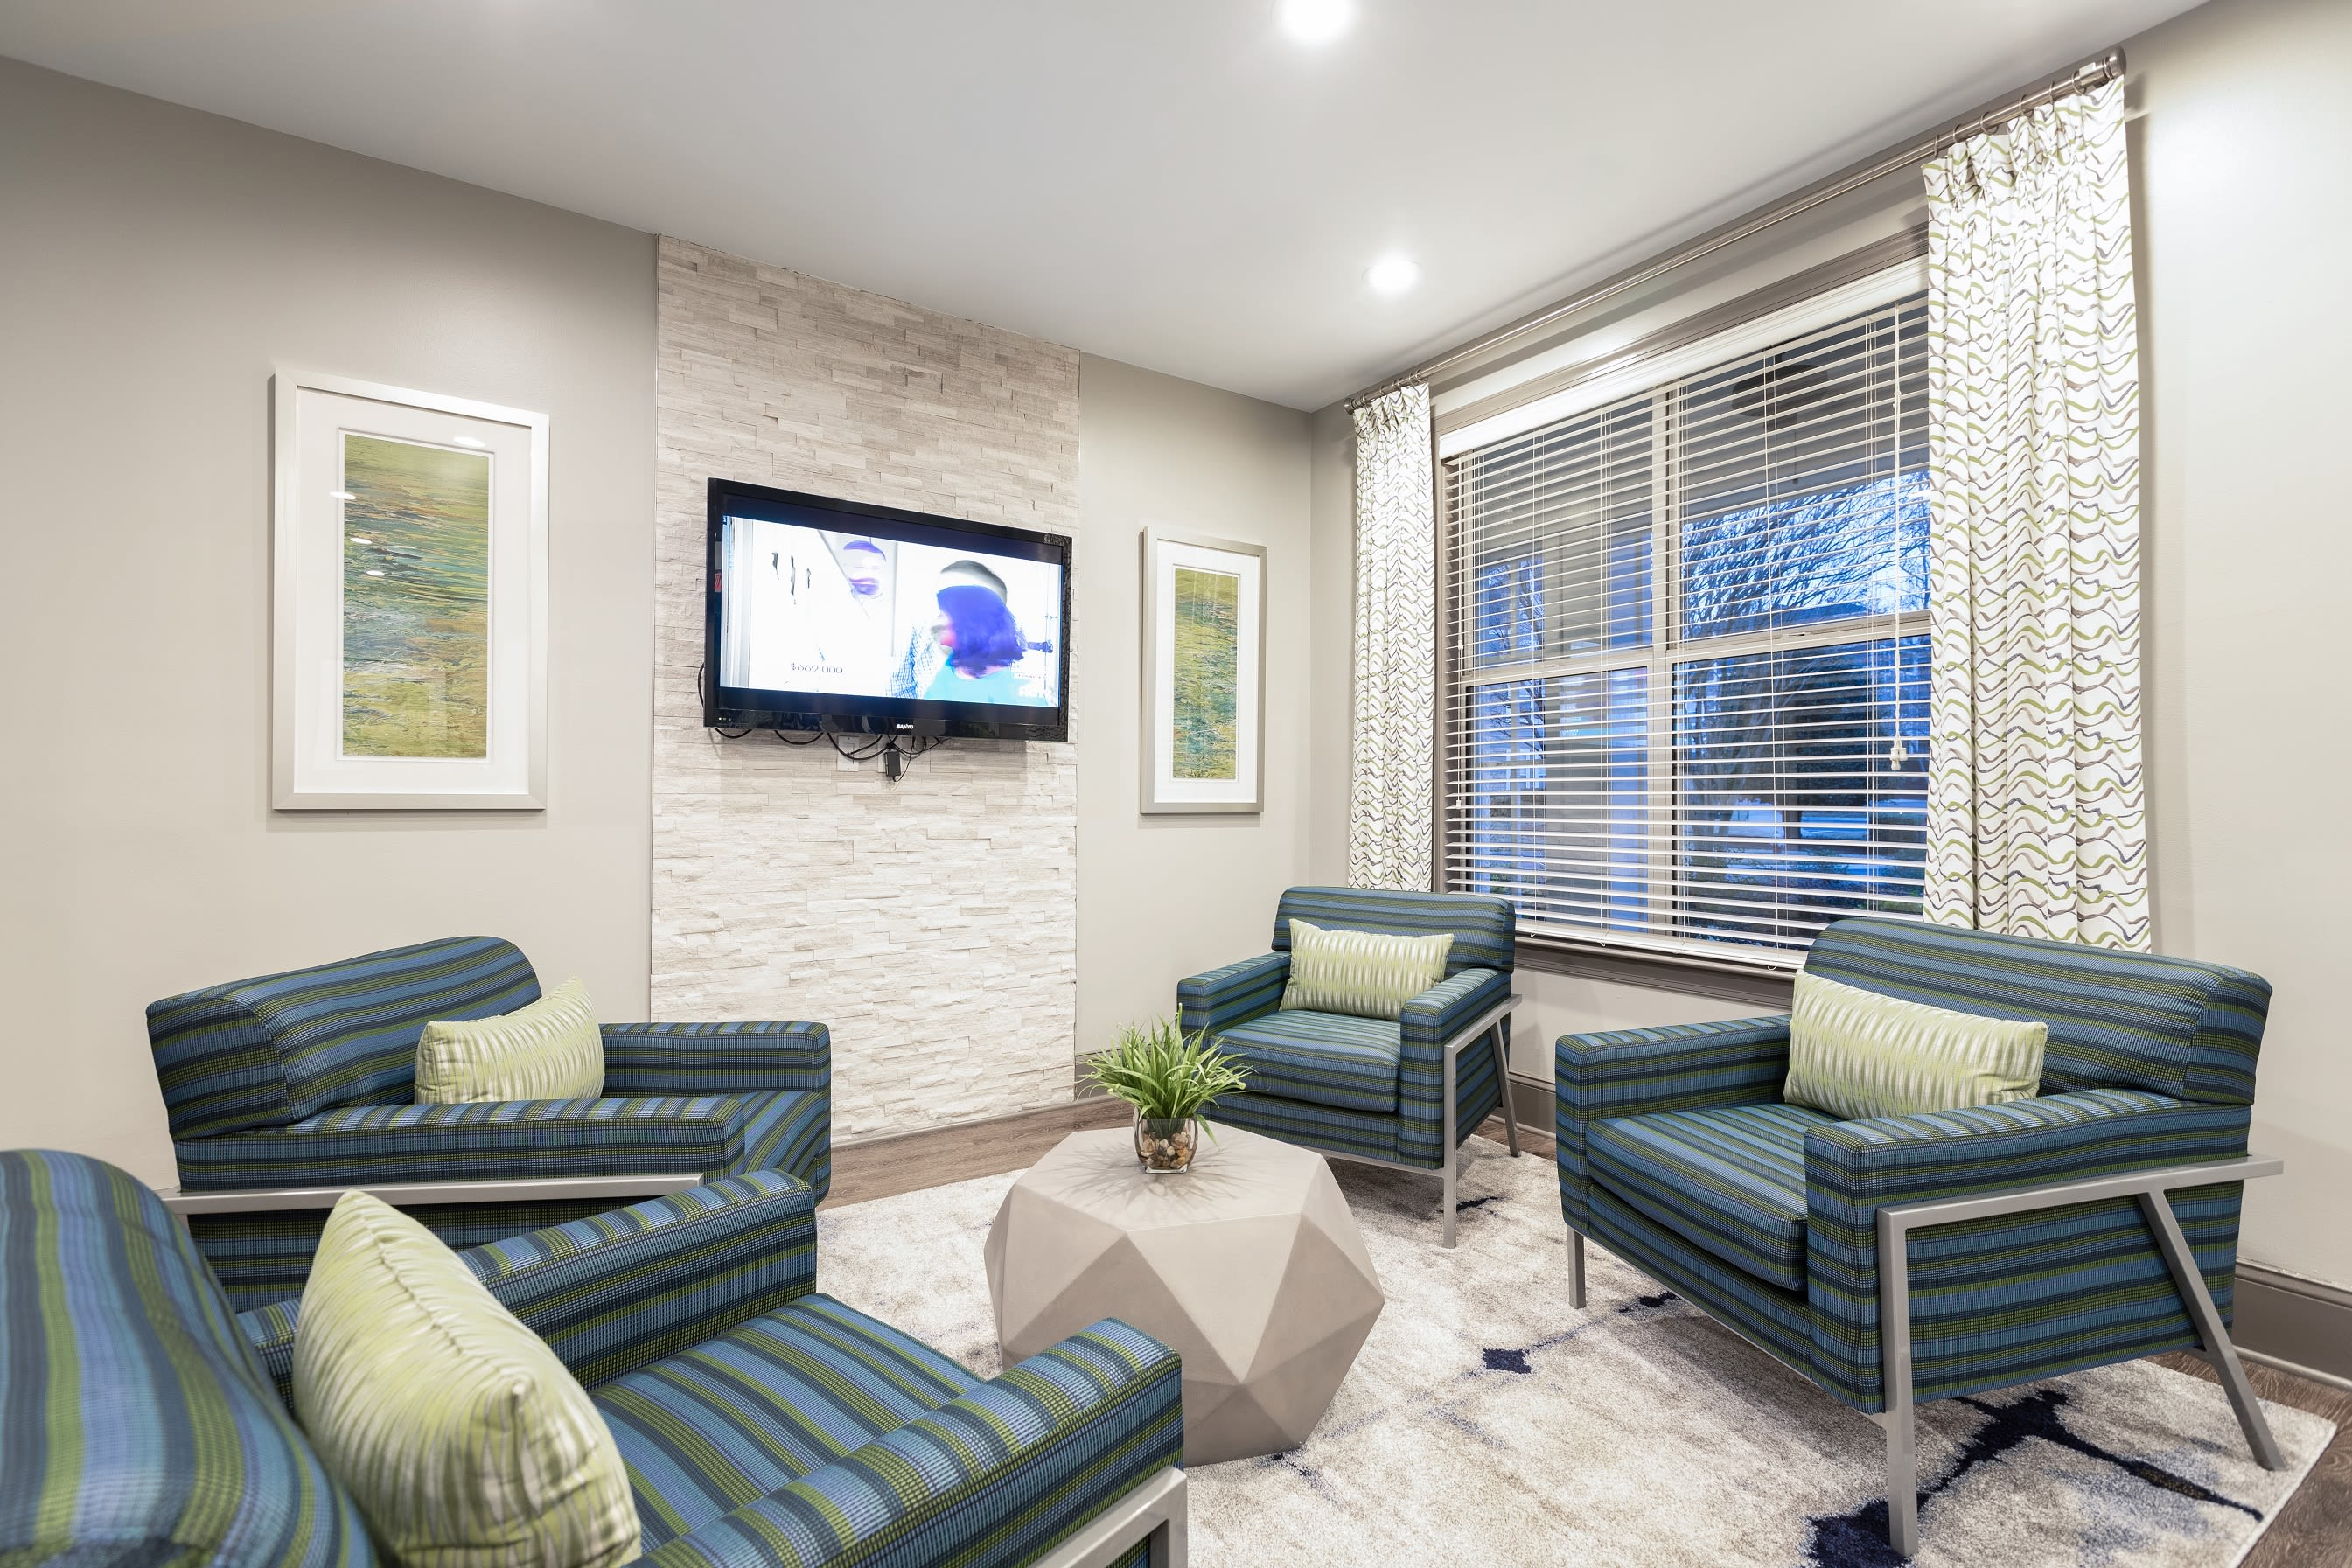 The Mark offers spacious 1, 2 & 3 bedroom apartments for rent in Raleigh